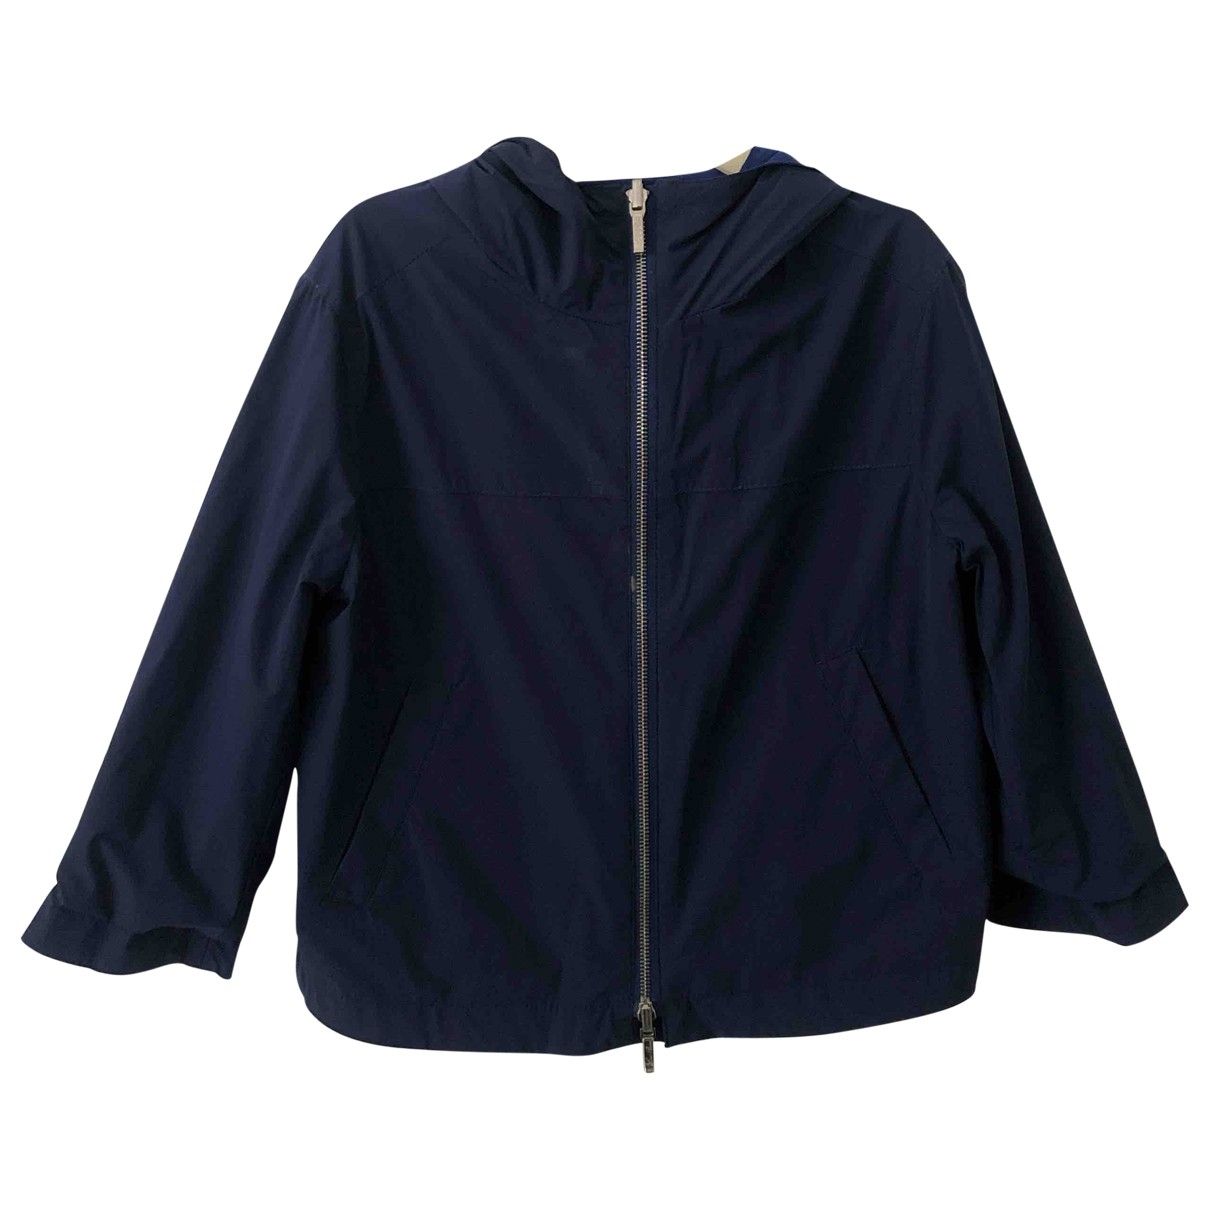 Loro Piana \N Blue jacket & coat for Kids 4 years - until 40 inches UK